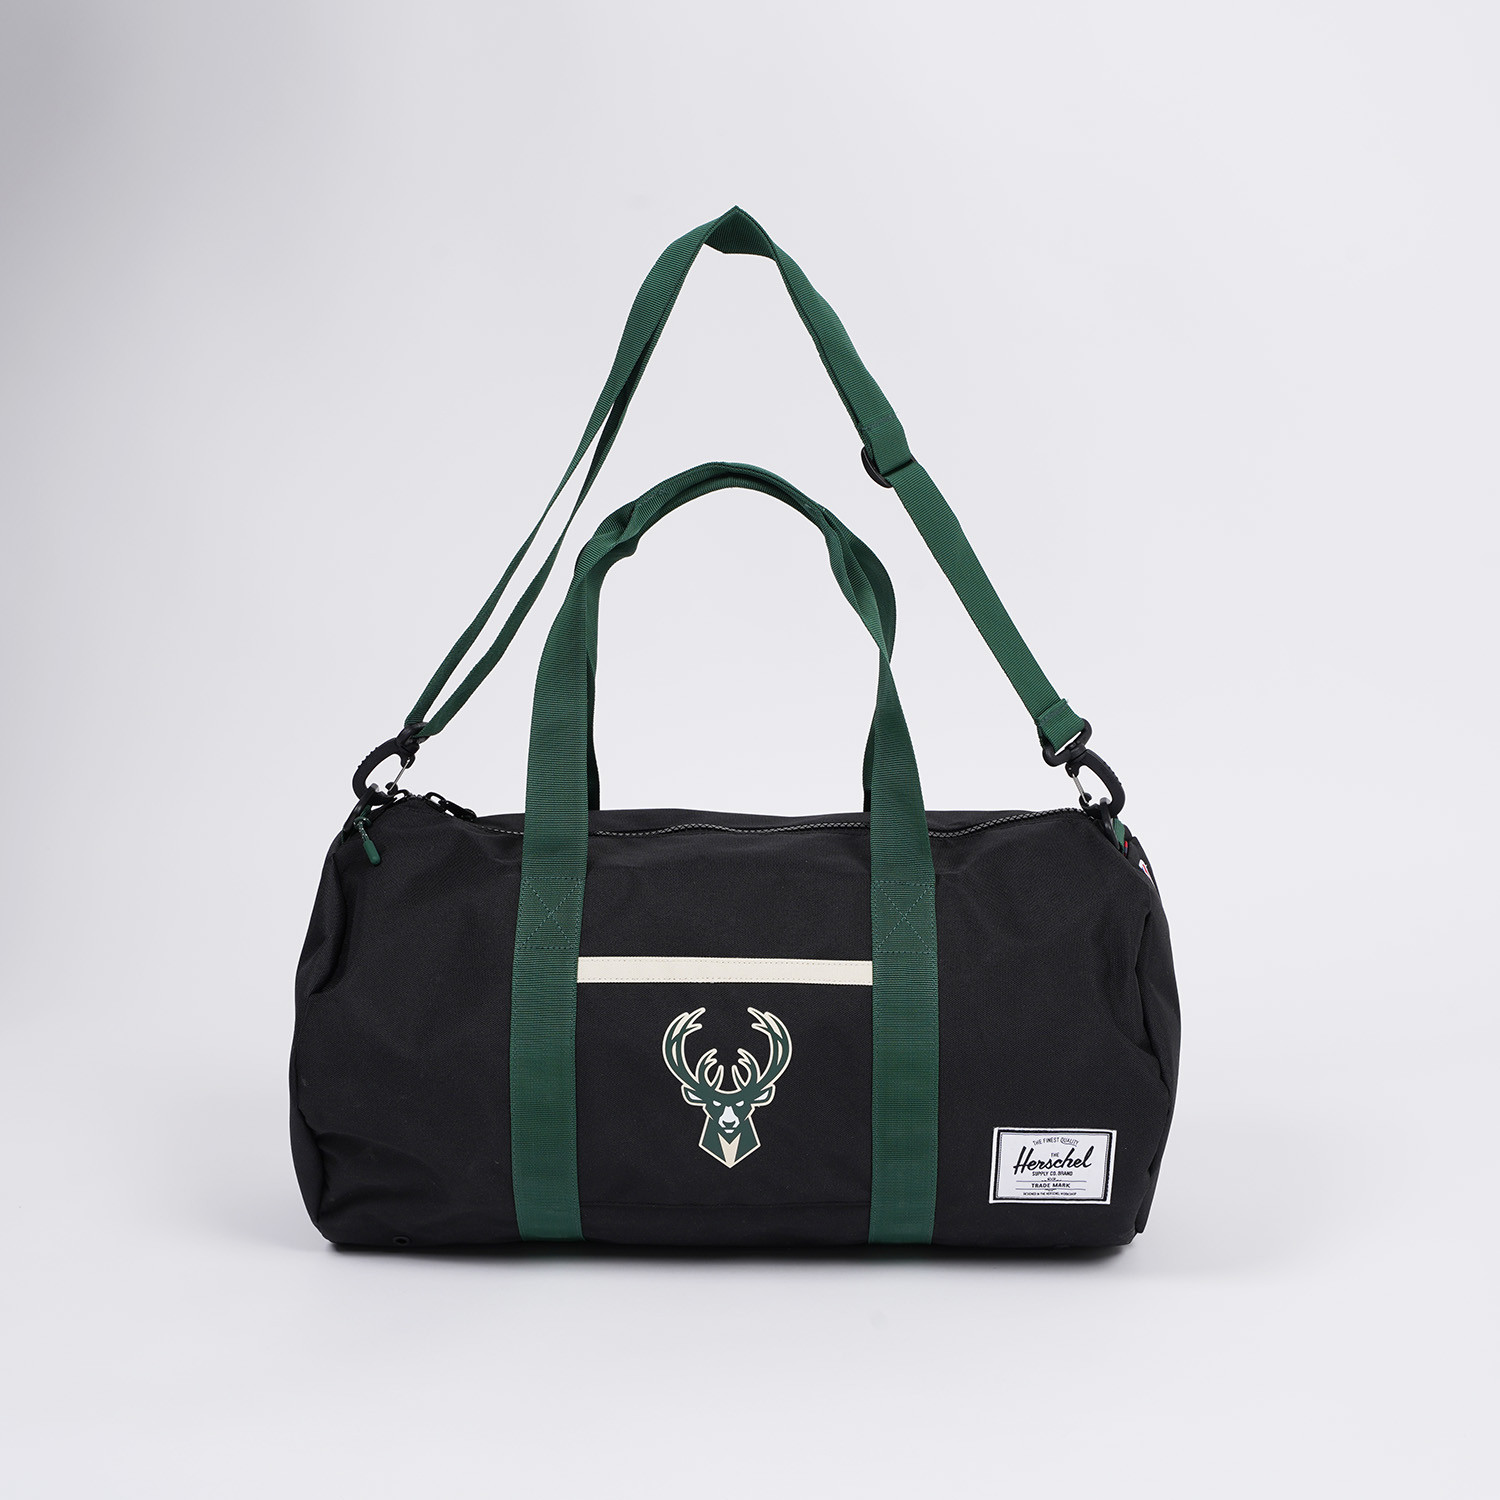 Herschel Sutton Mid-Volume Milwaukee Bucks Τσάντα Ταξιδιού 28L (9000064376_48999)